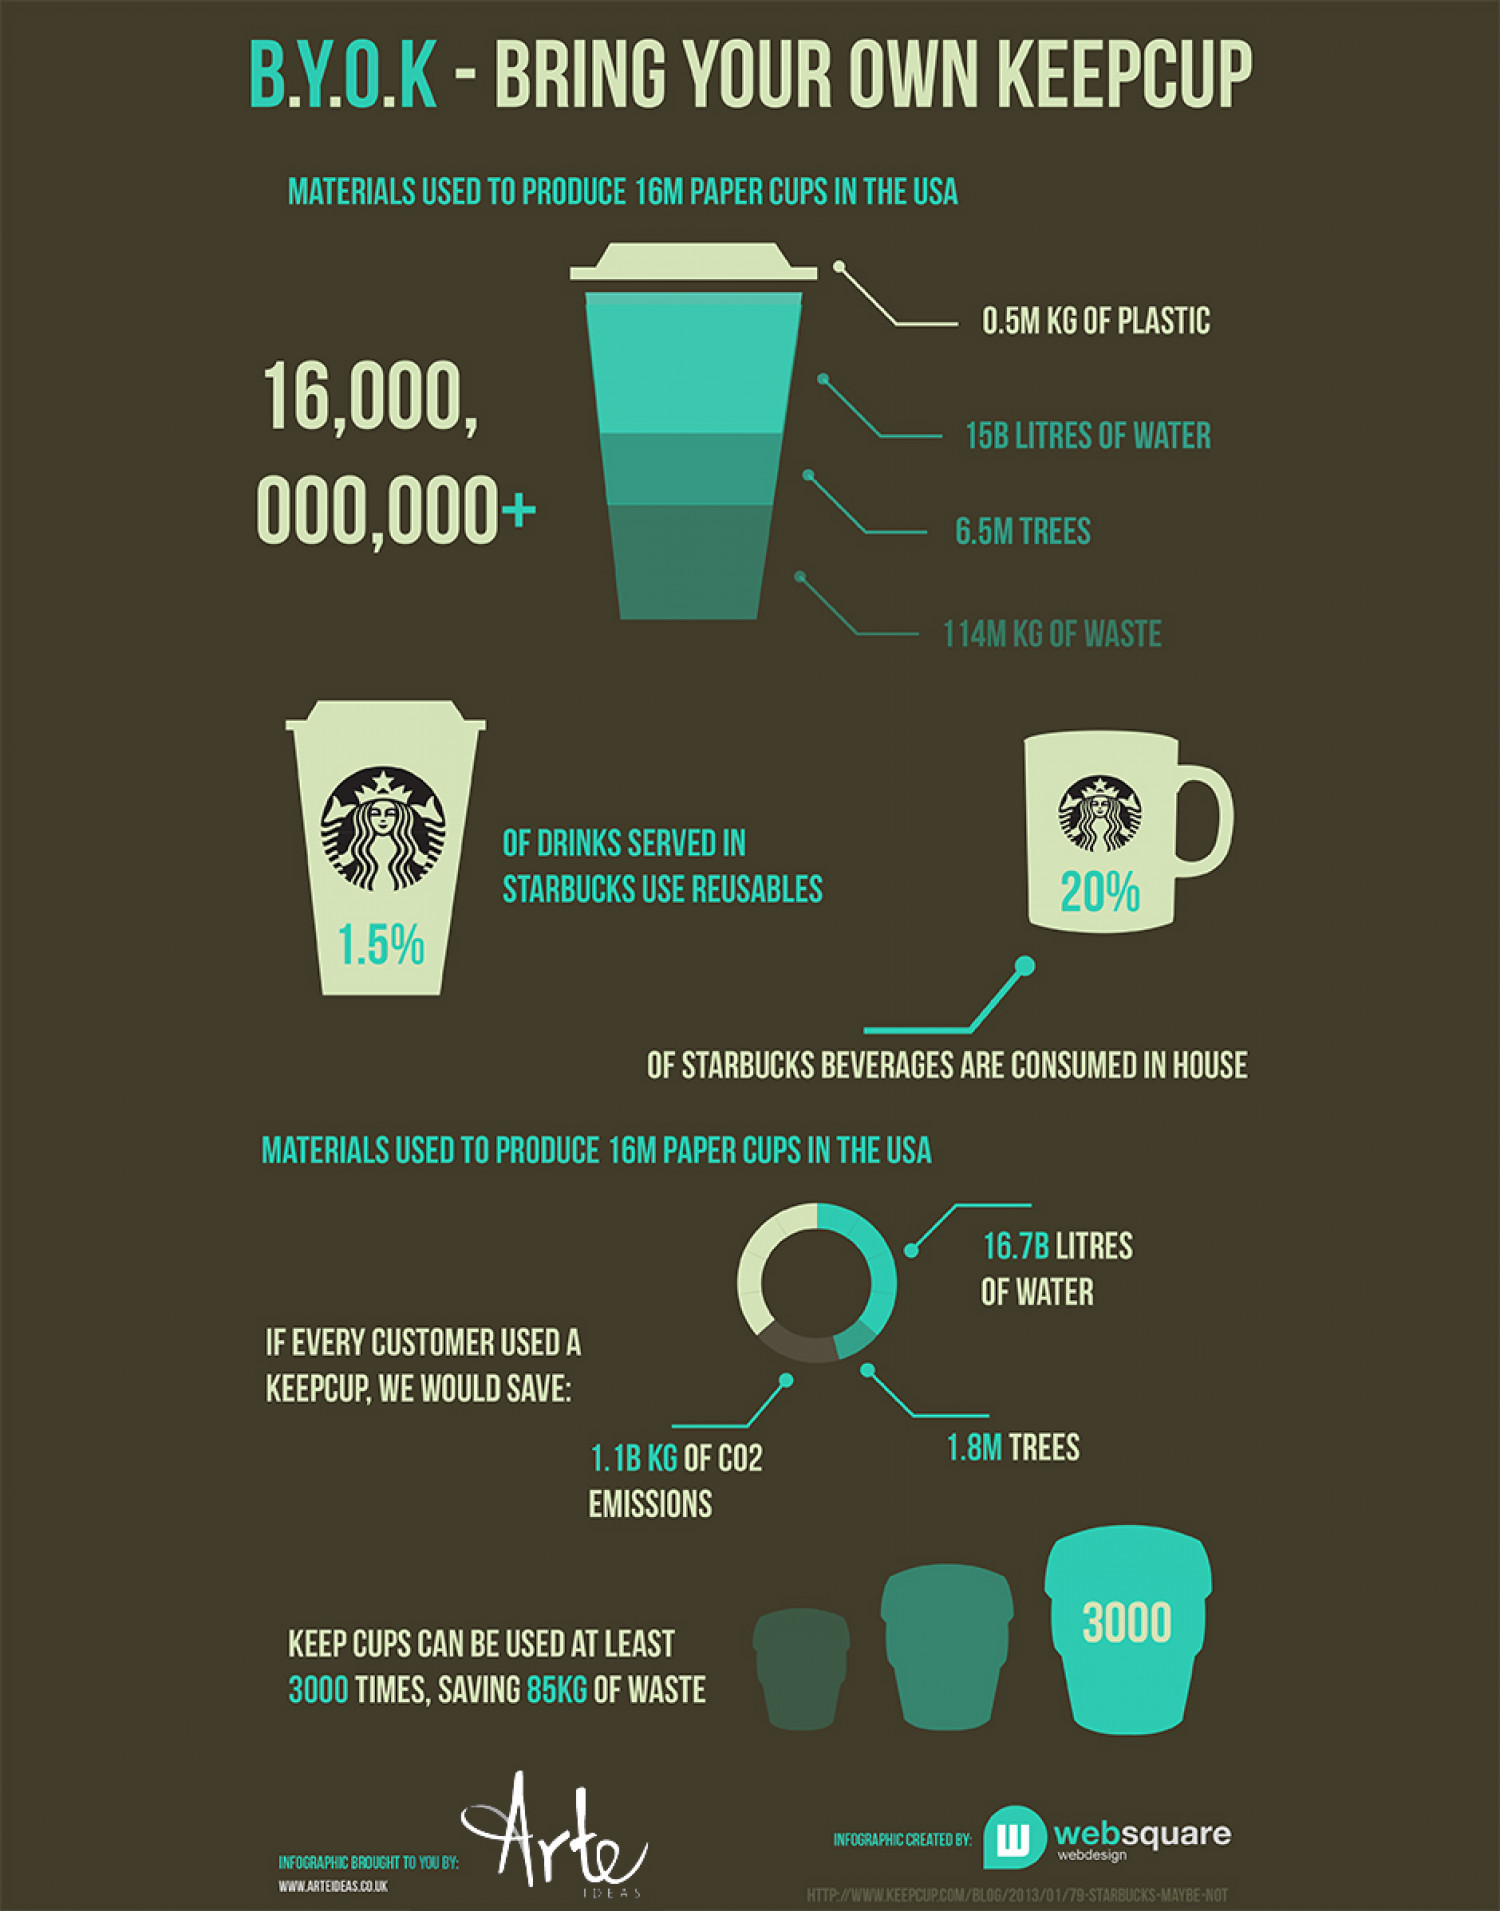 Bring Your Own Keepcup Infographic